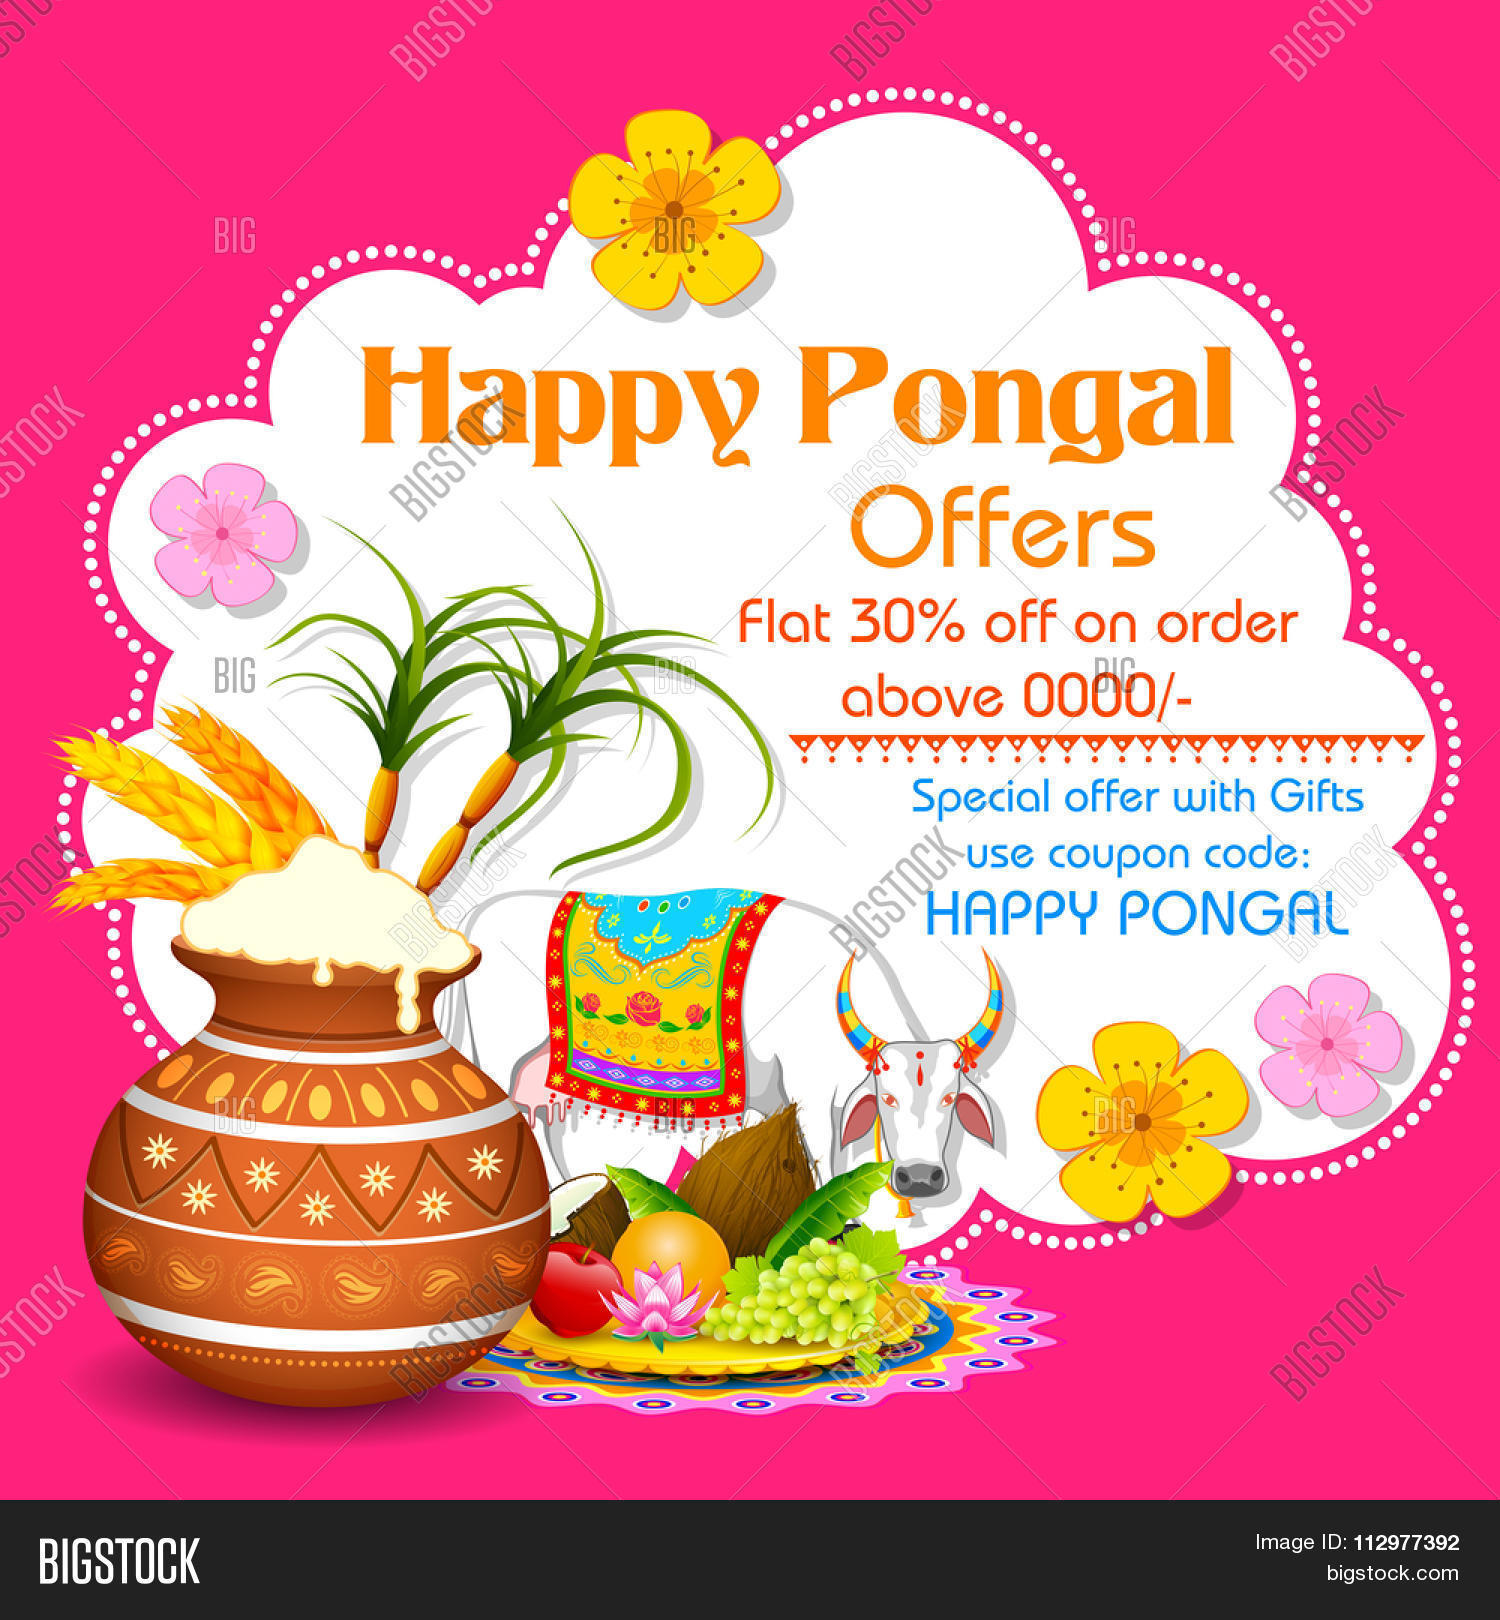 Illustration happy vector photo free trial bigstock illustration of happy pongal greeting background m4hsunfo